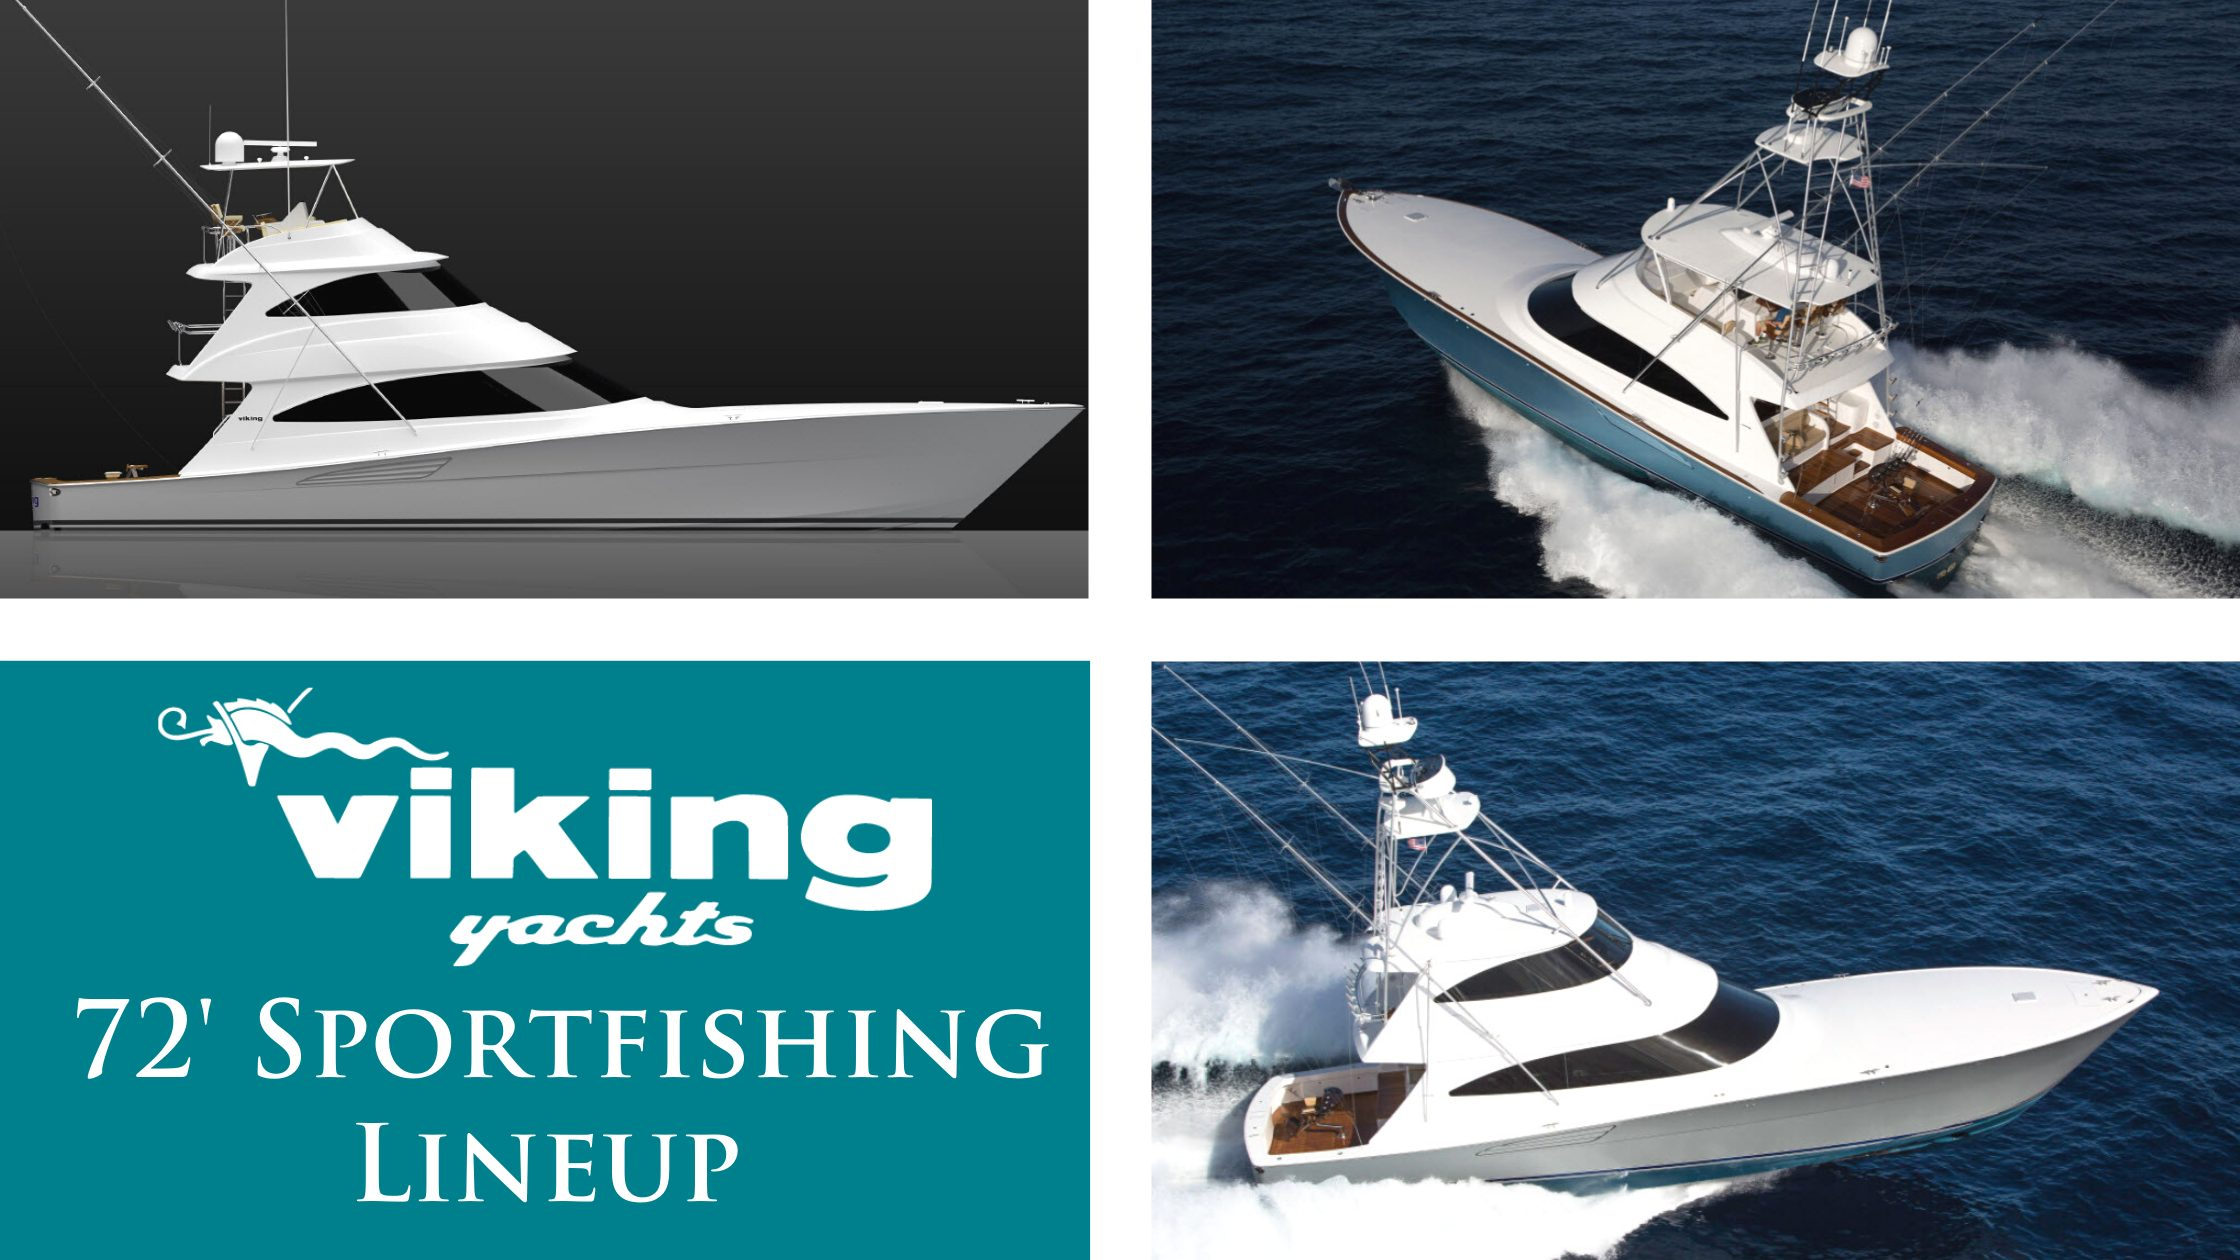 Elevated Attack – The Viking 72 Sportfishing Lineup